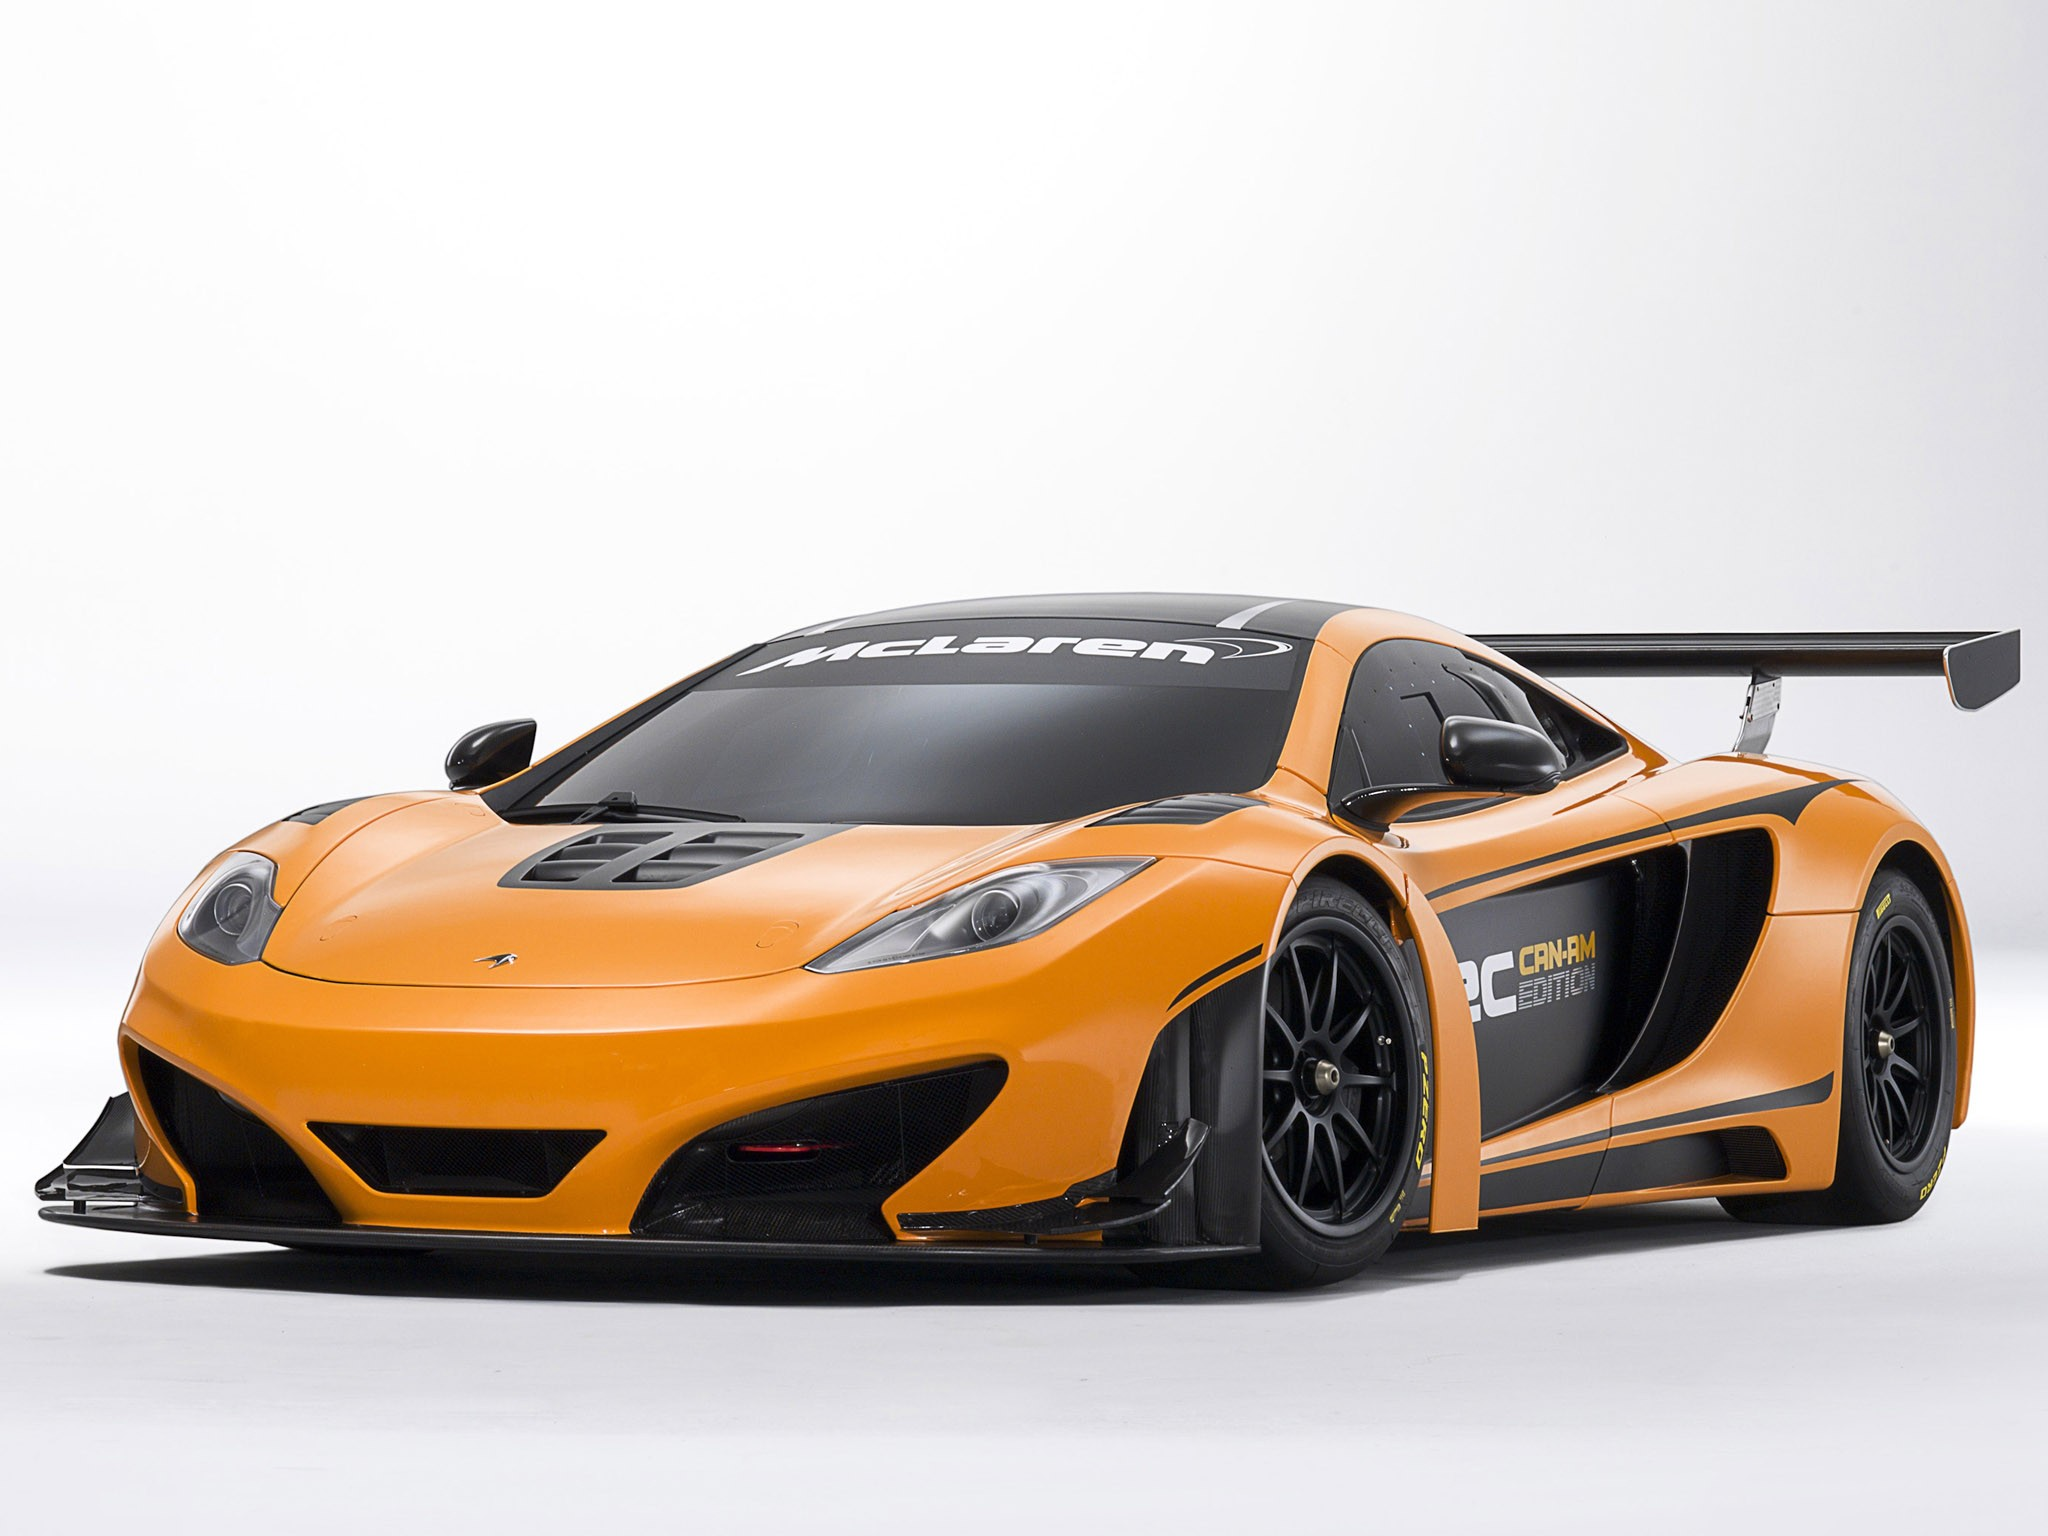 2012 Mclaren MP4 12c Can-AM Edition